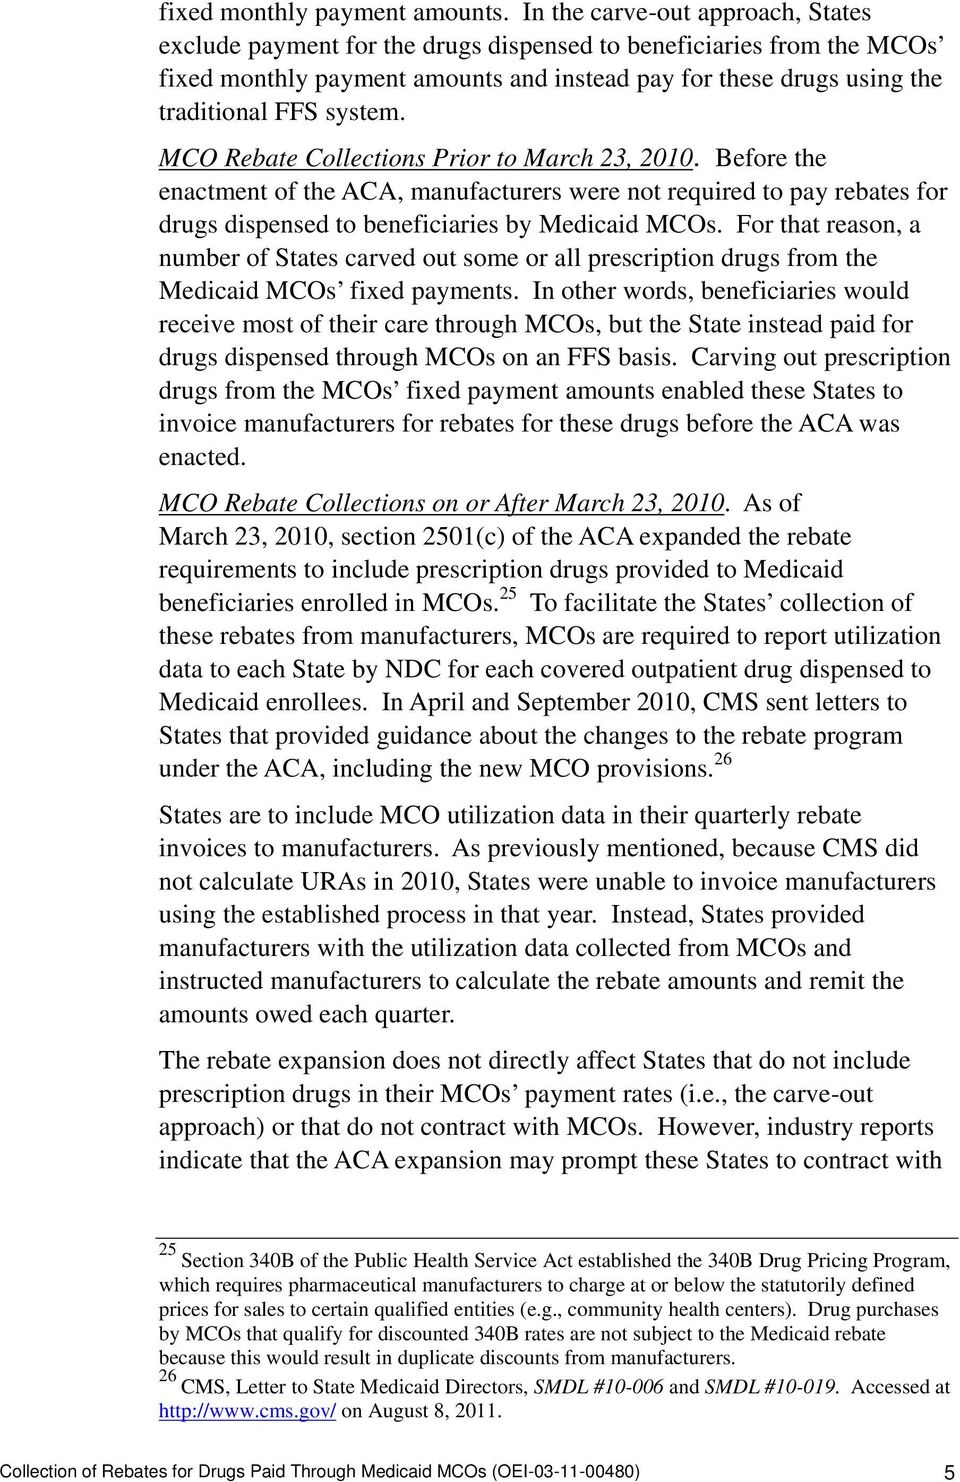 MCO Rebate Collections Prior to March 23, 2010. Before the enactment of the ACA, manufacturers were not required to pay rebates for drugs dispensed to beneficiaries by Medicaid MCOs.